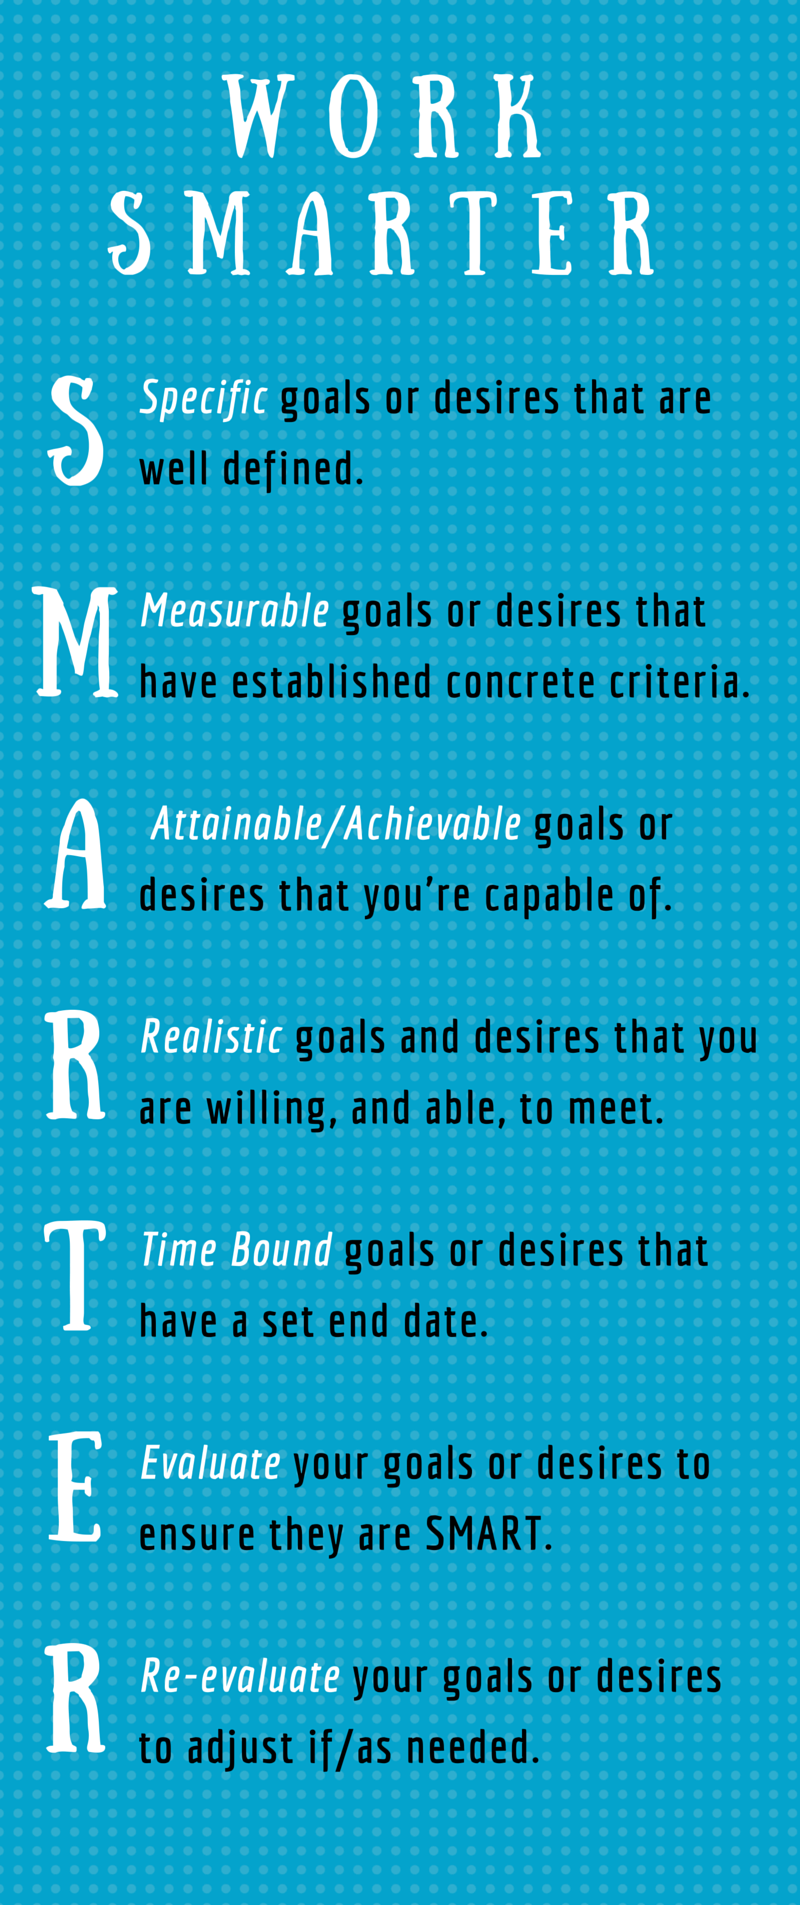 Setting and Achieving Goals that are SMARTER